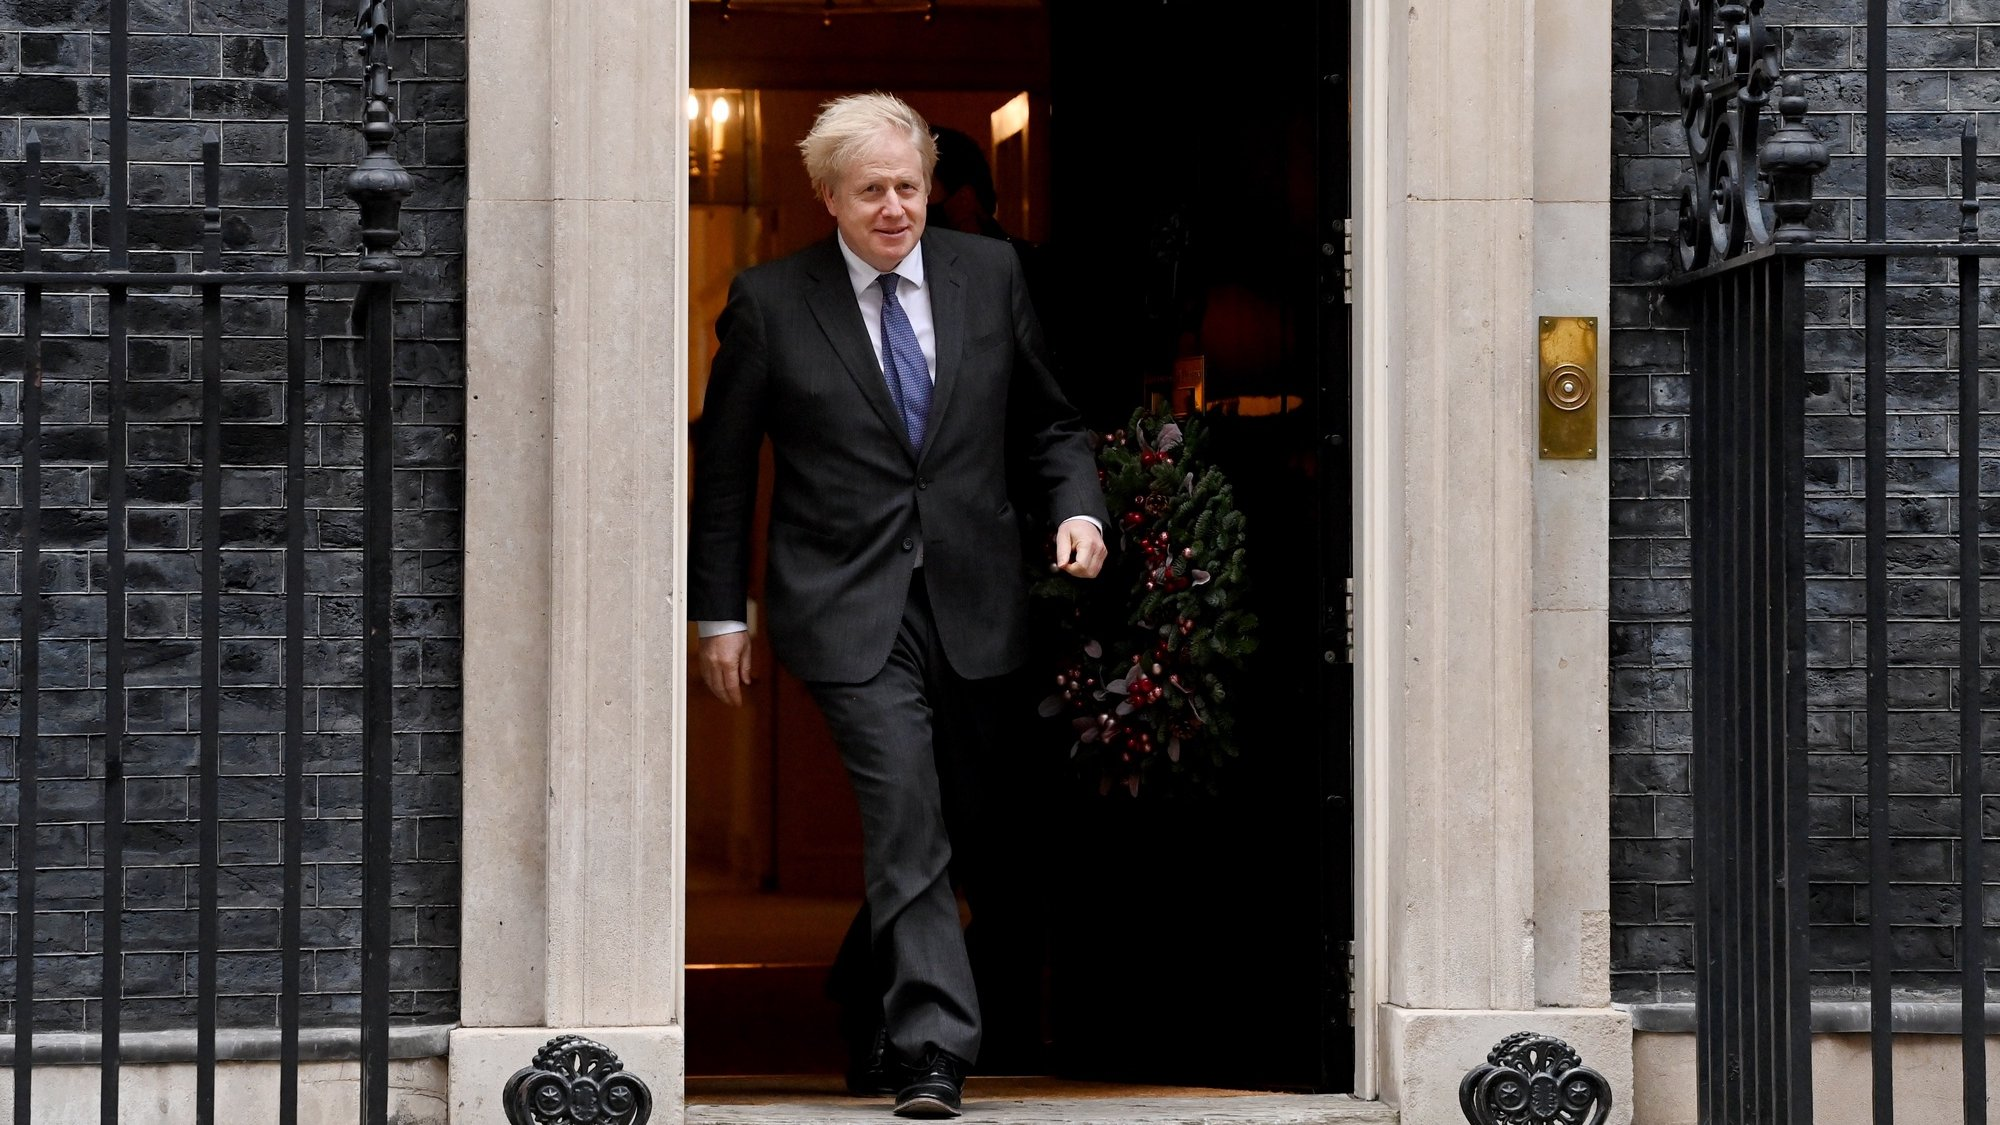 epa08874693 Britain's Prime Minister Boris Johnson welcomes Crown Prince of the Emirate of Abu Dhabi, Sheikh Mohammed bin Zayed Al Nahyan (not pictured) to his official residence at 10 Downing Street in London, Britain, 10 December 2020.  EPA/FACUNDO ARRIZABALAGA